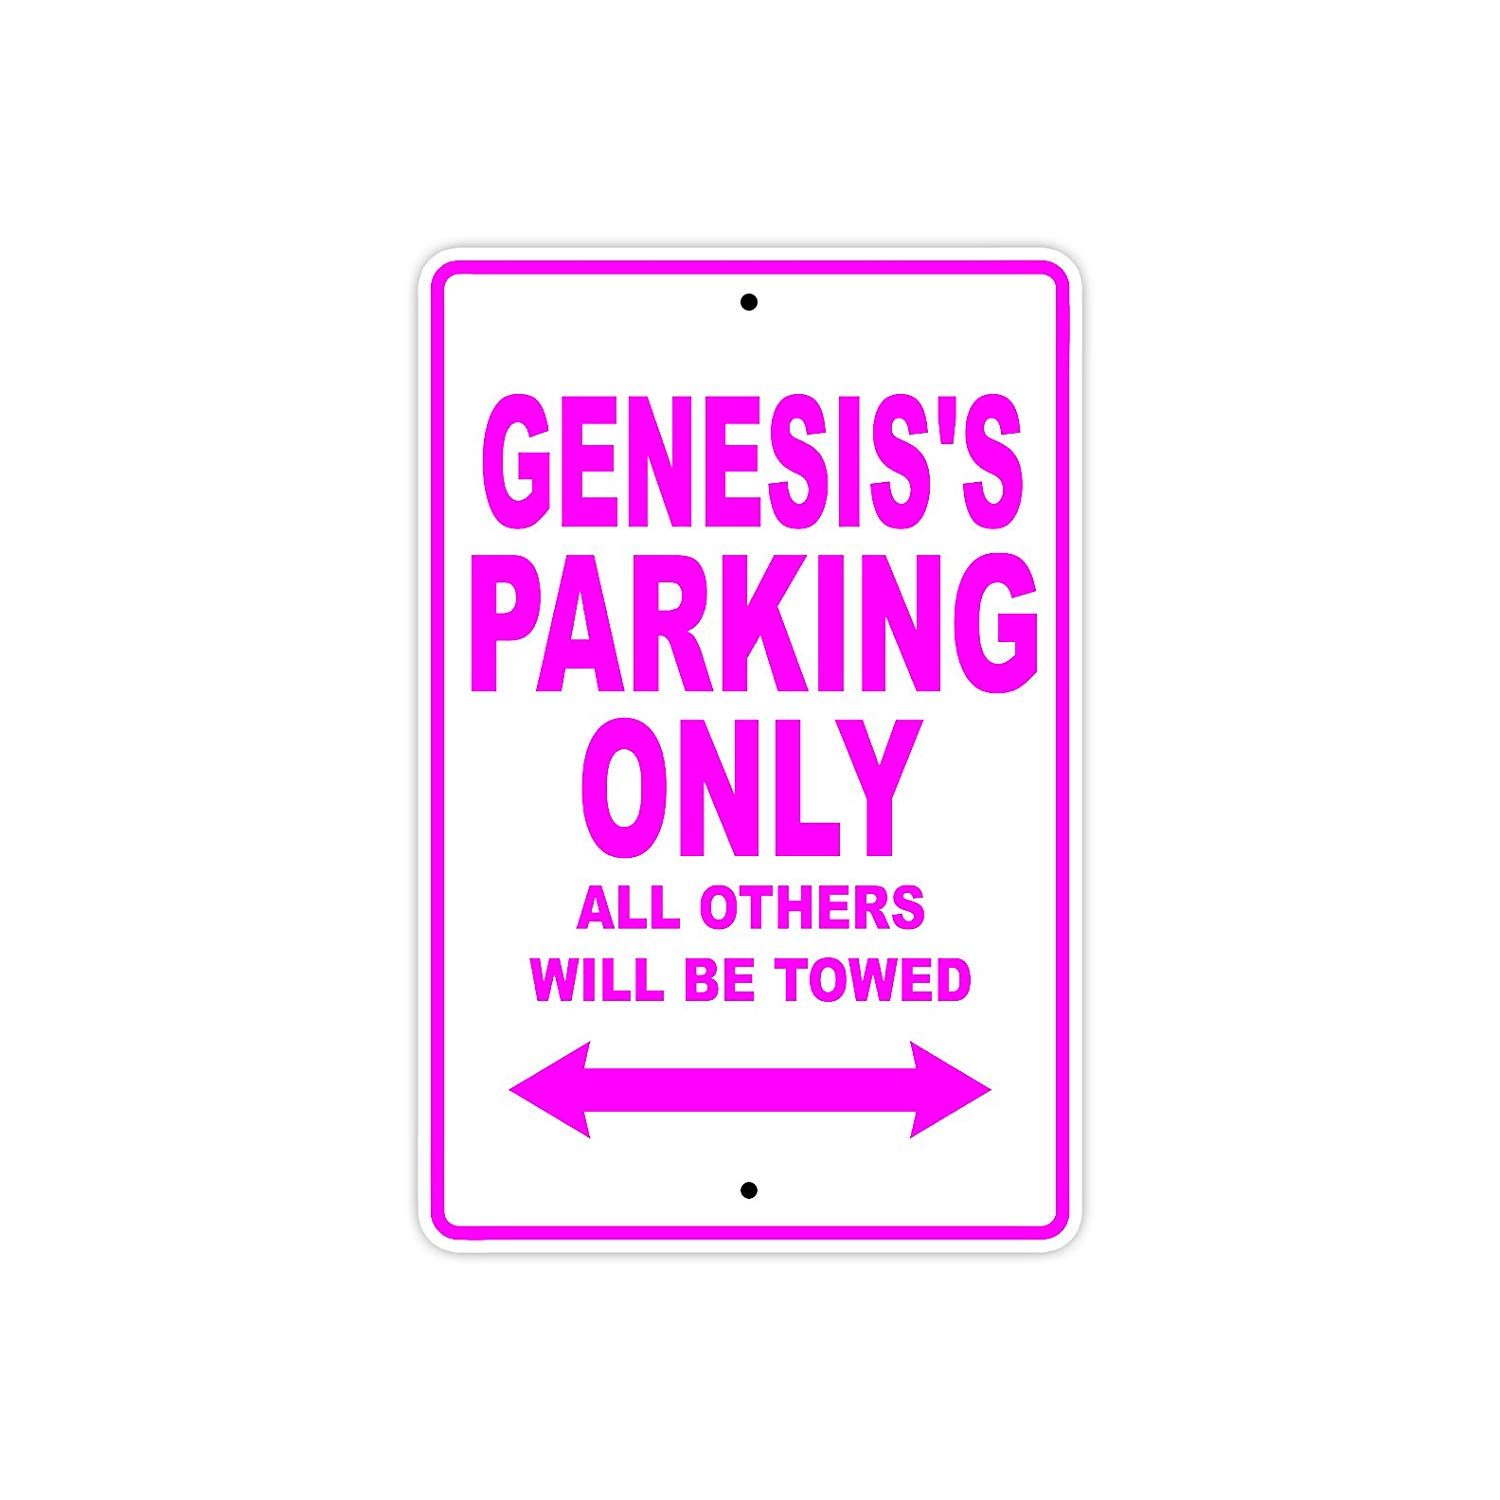 "Genesis's Parking Only All Others Will Be Towed Name Gift Novelty Metal Aluminum 8""x12"" Sign"